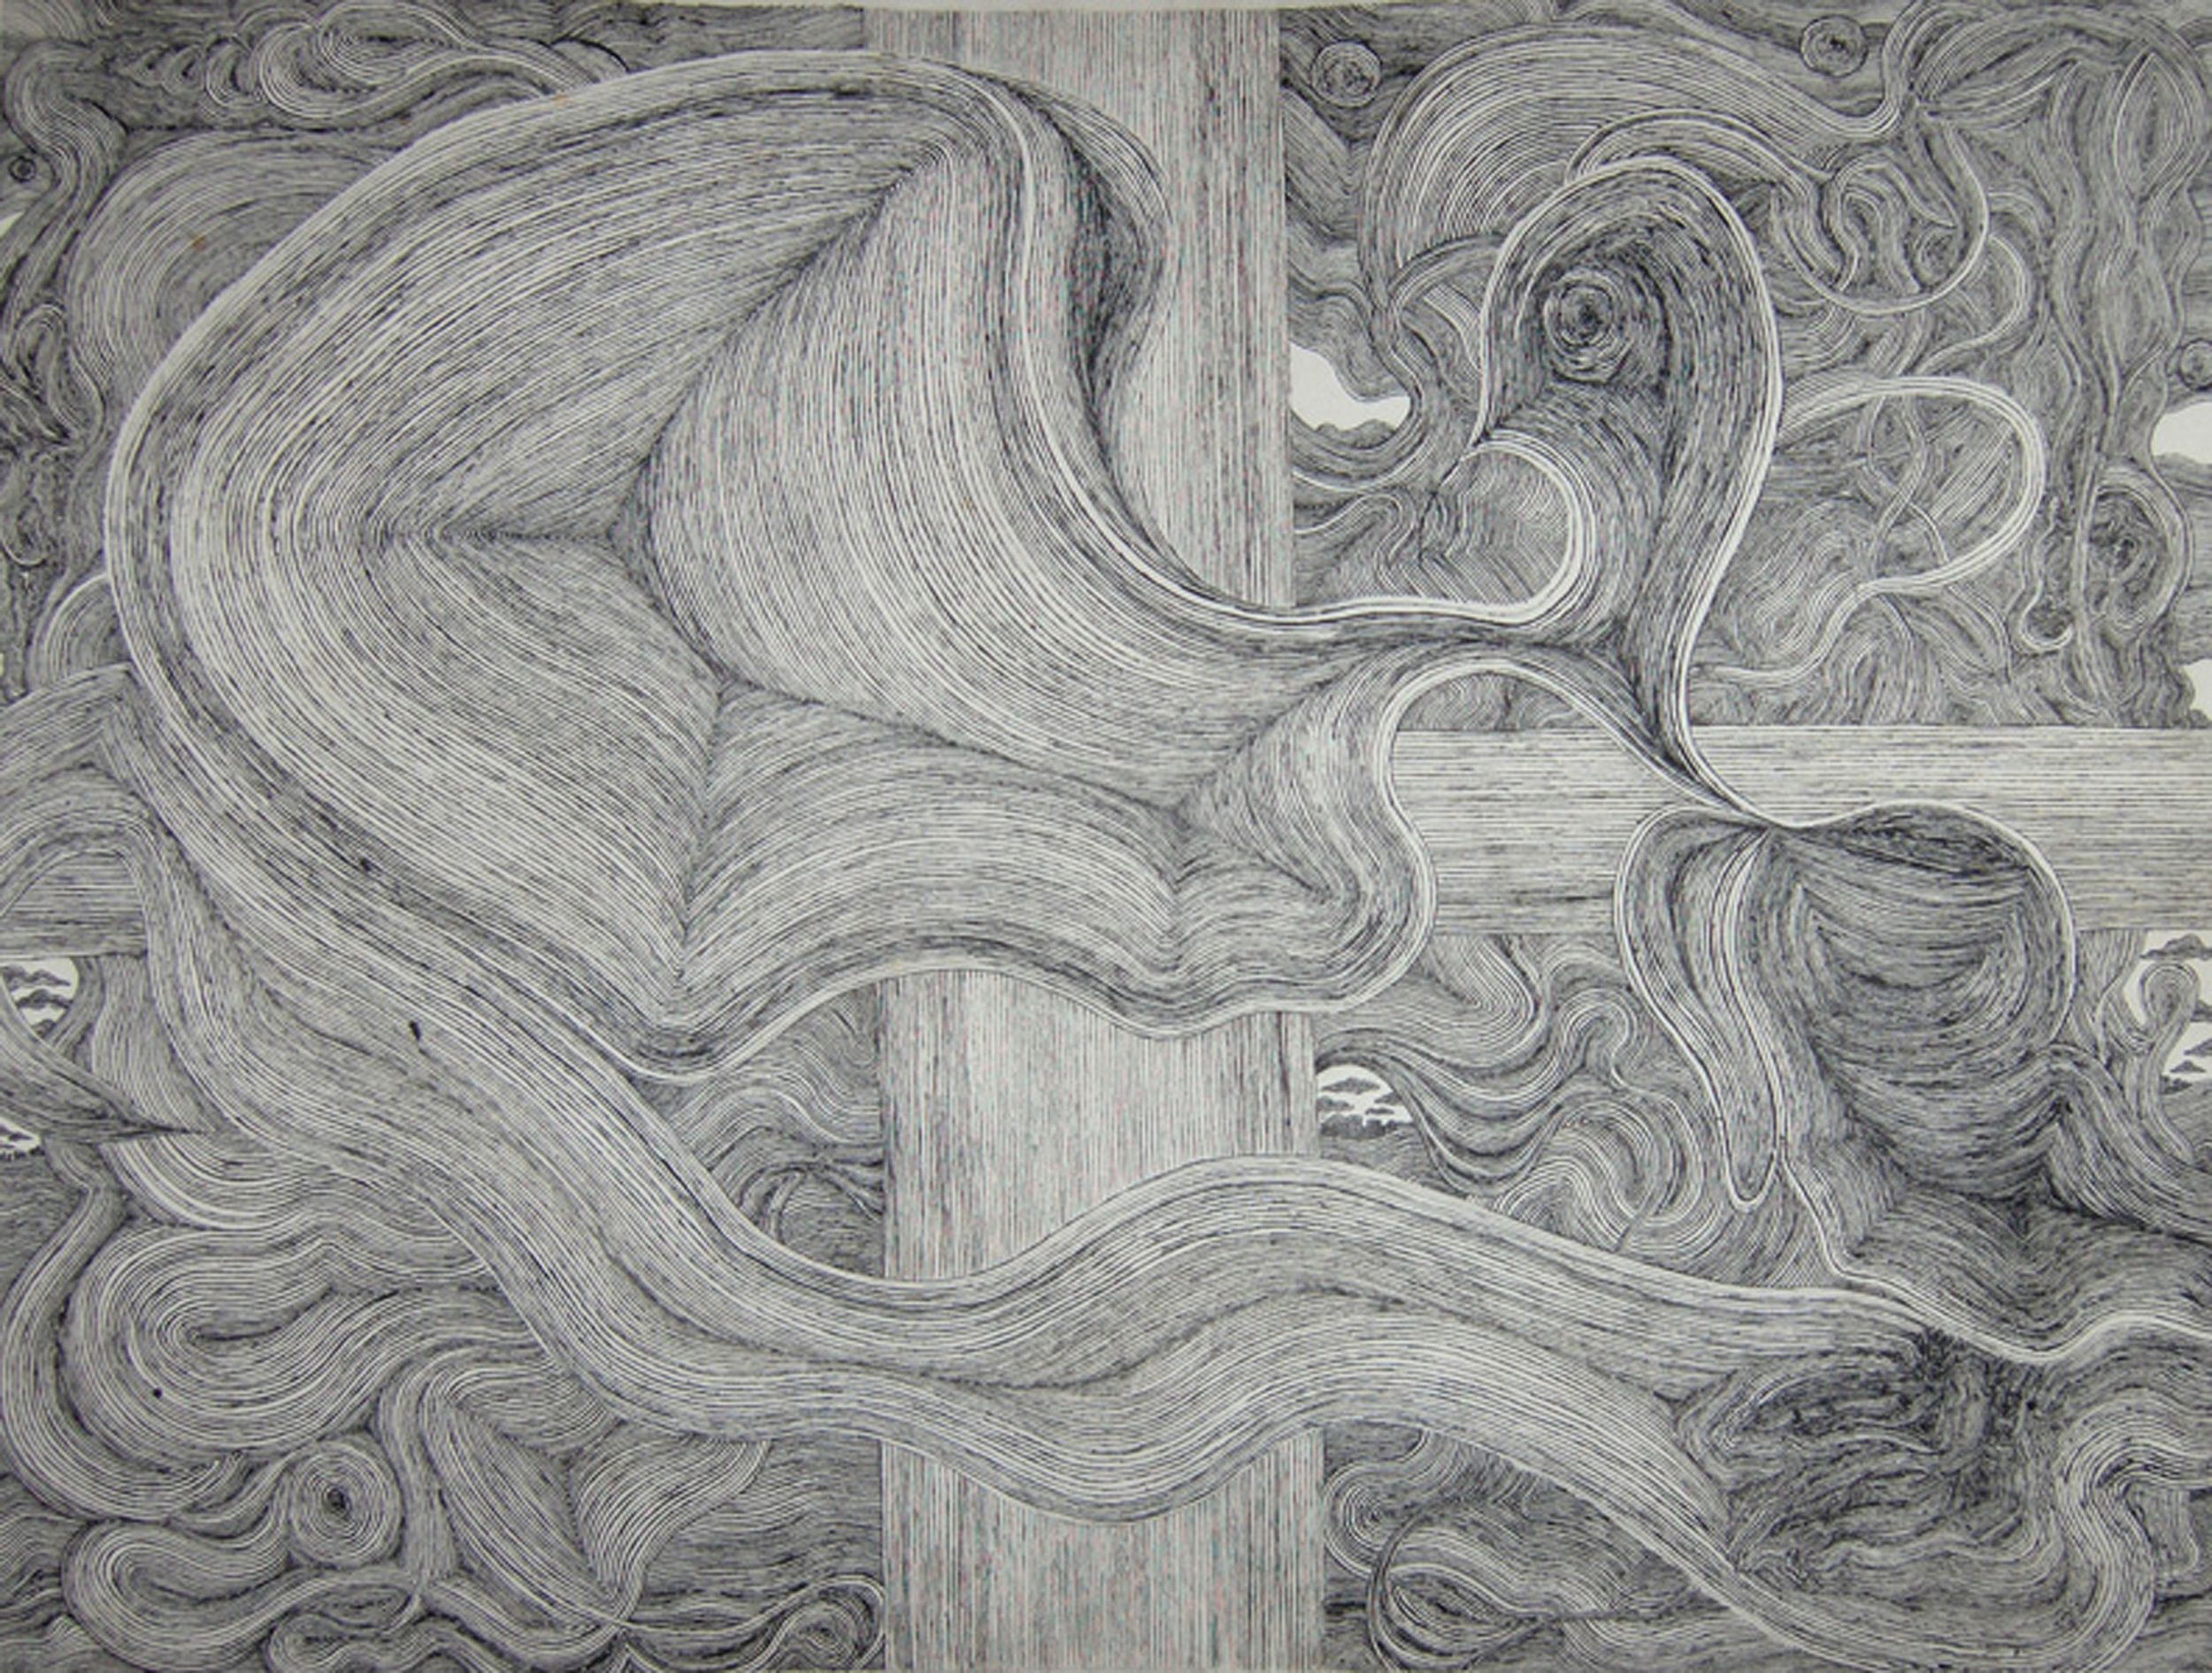 Cities and Swirls (Beyond Branch and Windows)